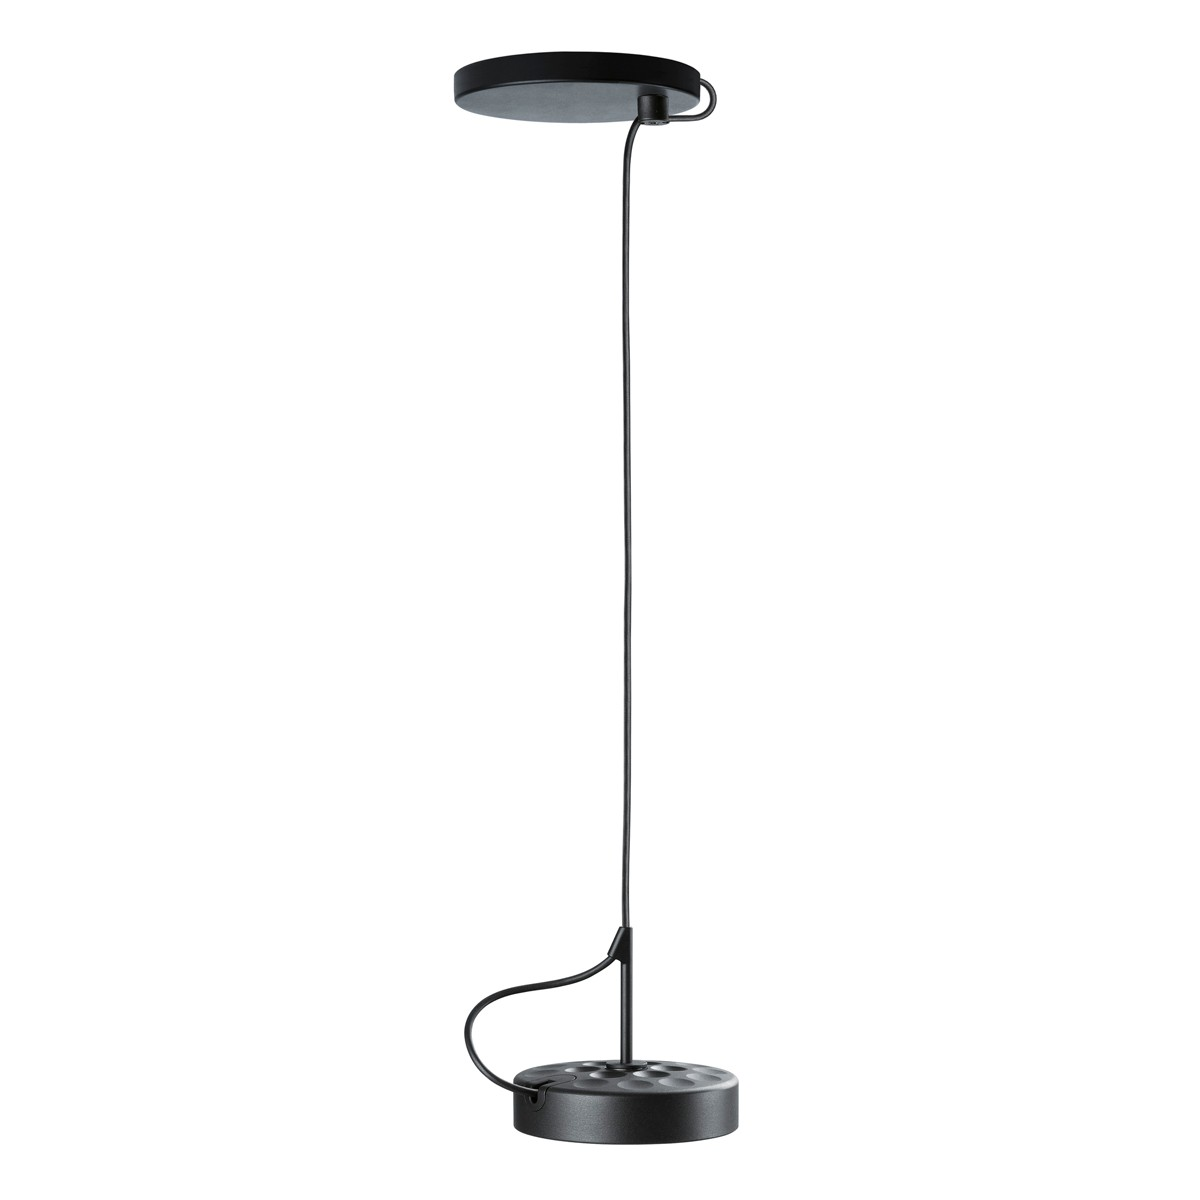 Belux U-Turn-34 LED Pendelleuchte, On/Off, schwarz